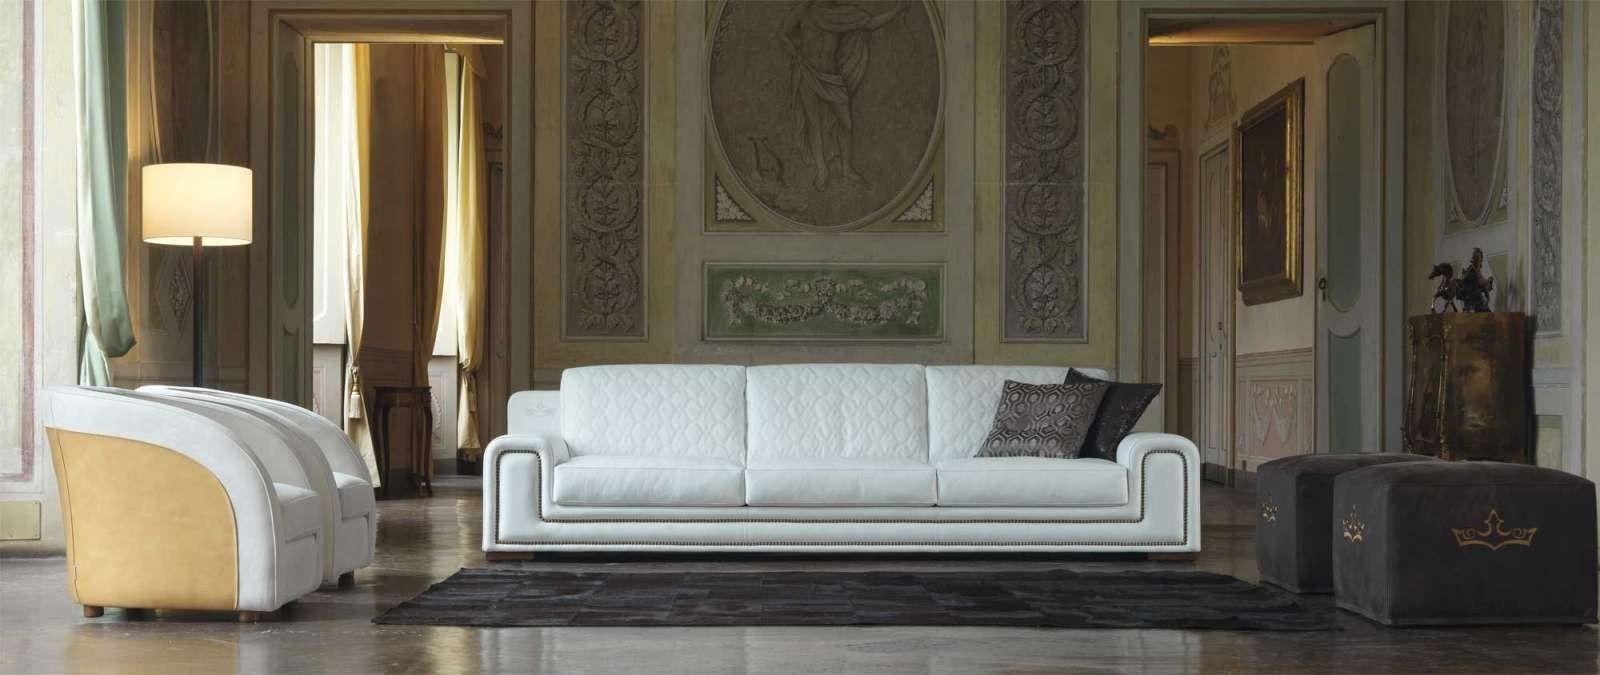 Elegant Leather Sofa MAJESTIC By Formenti